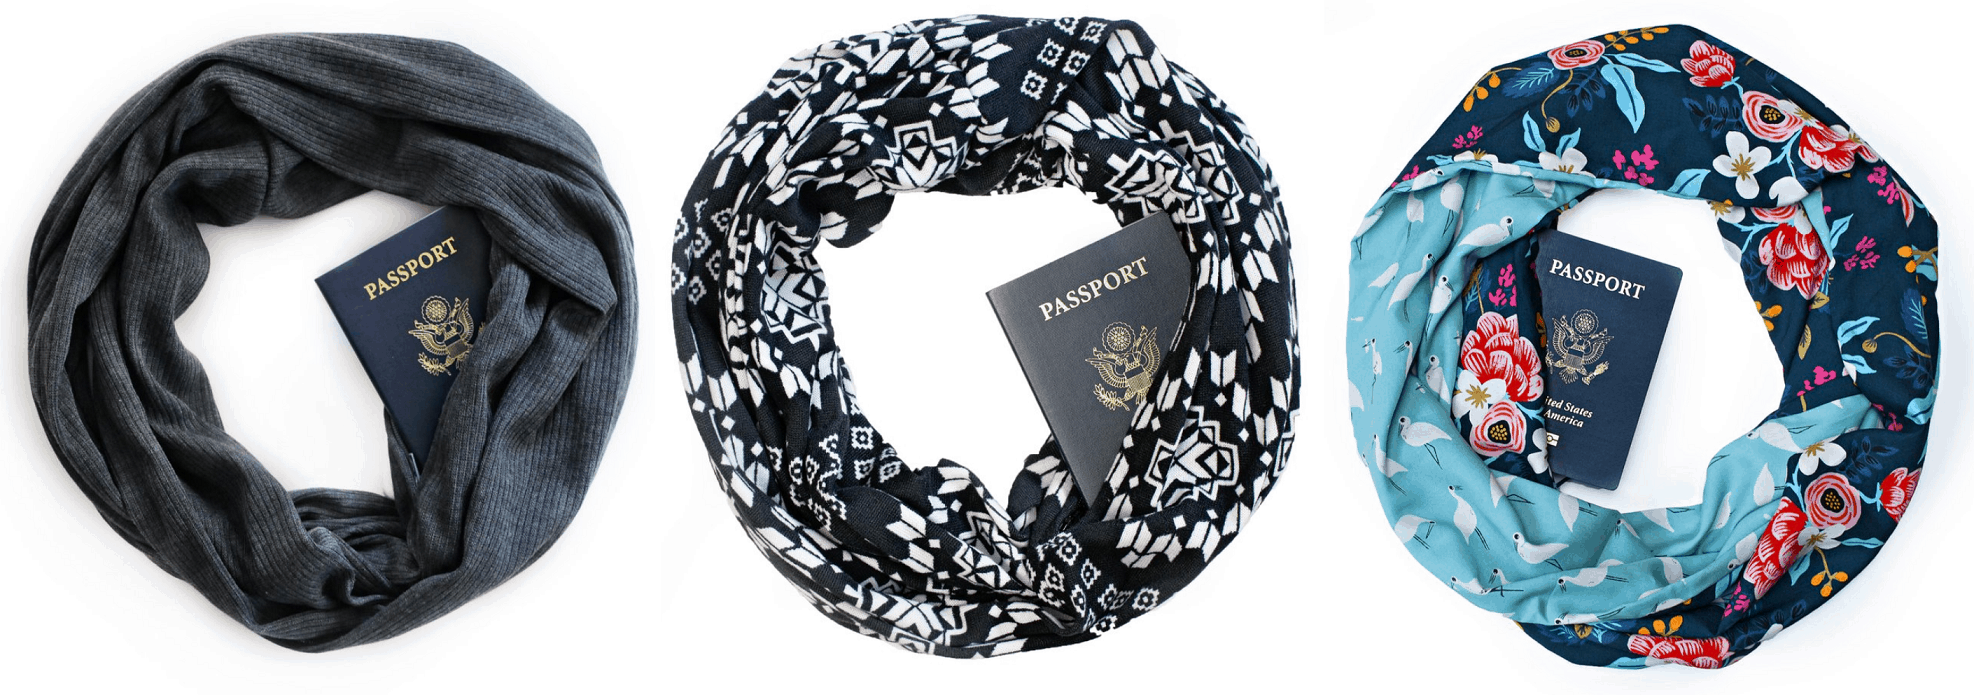 Speakeasy hidden pocket scarves